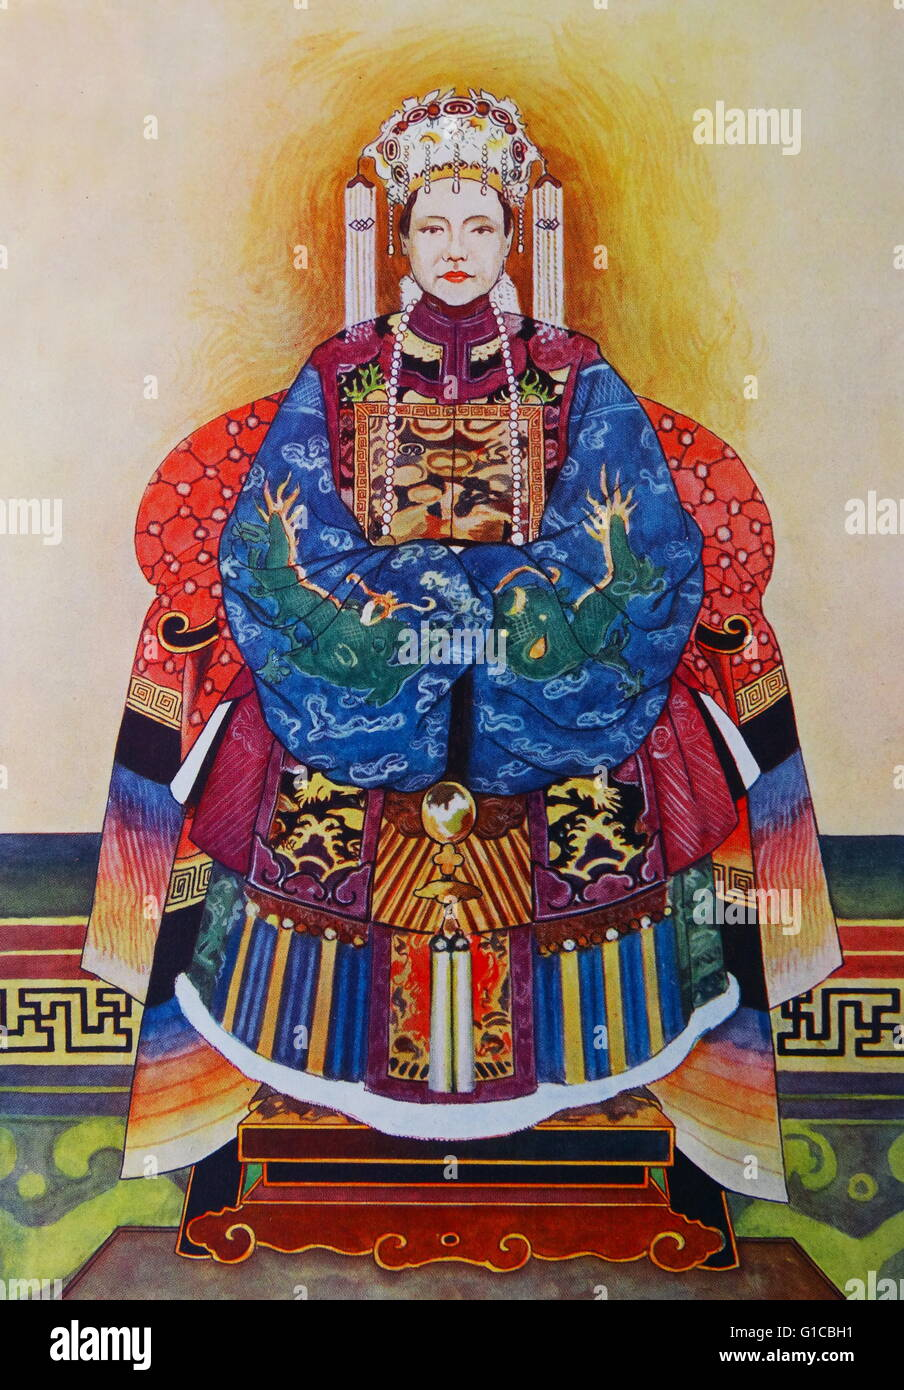 Painting of Empress Dowager Cixi (1835-1908) a Chinese empress dowager and regent who effectively controlled the - Stock Image